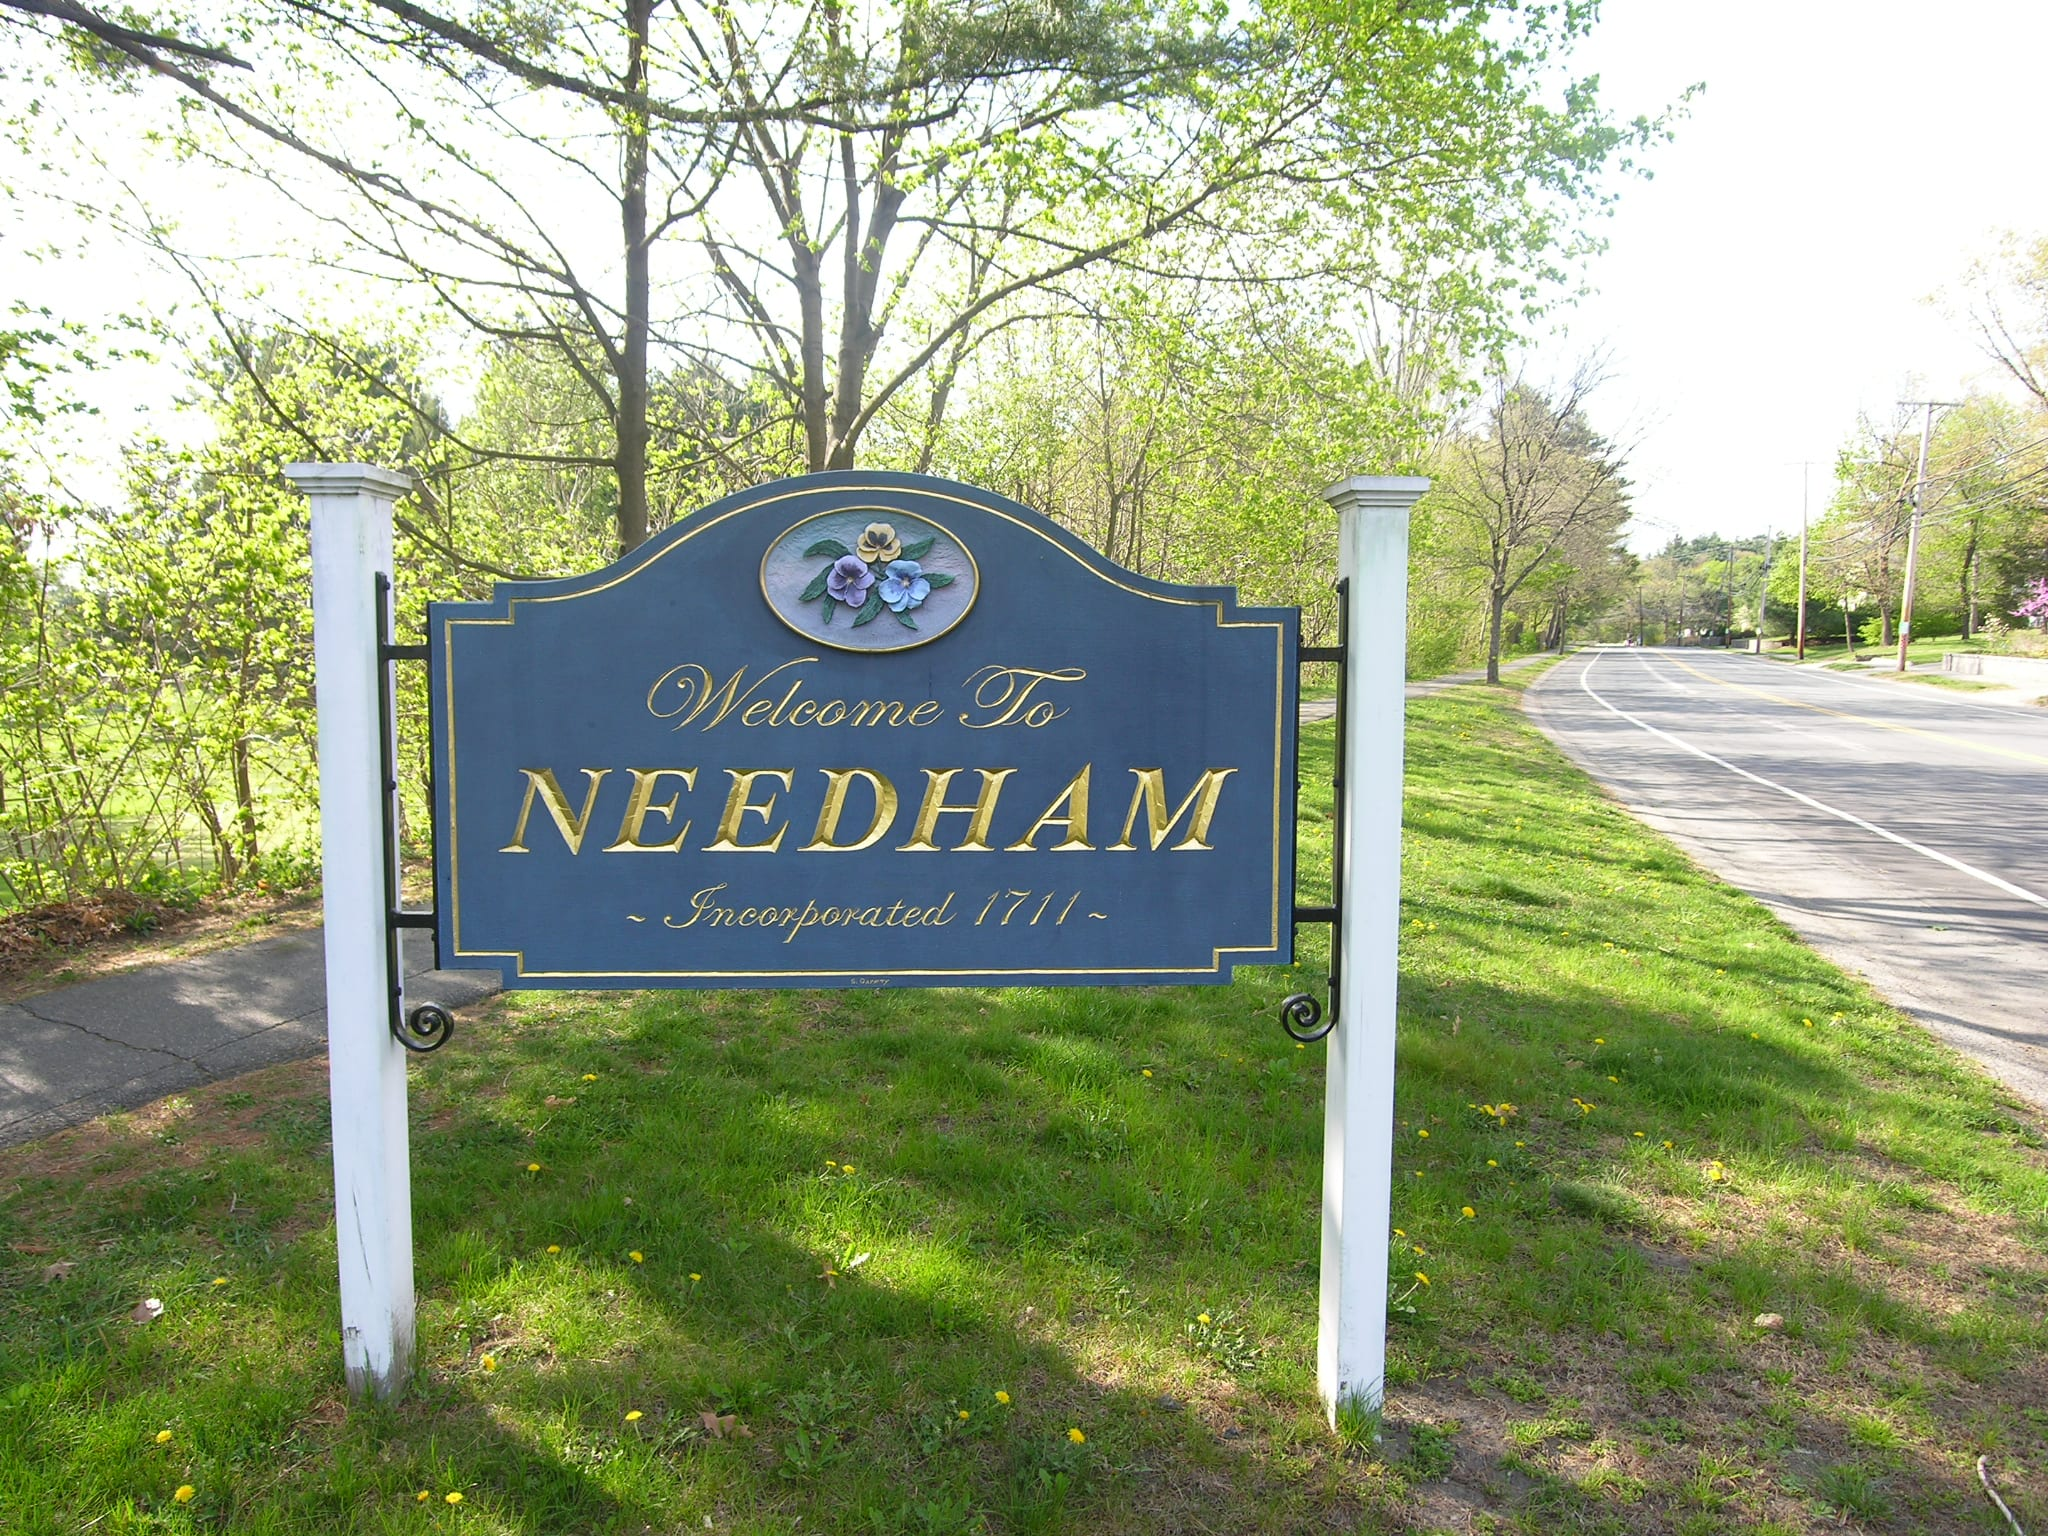 A Welcome sign to Needham, MA.